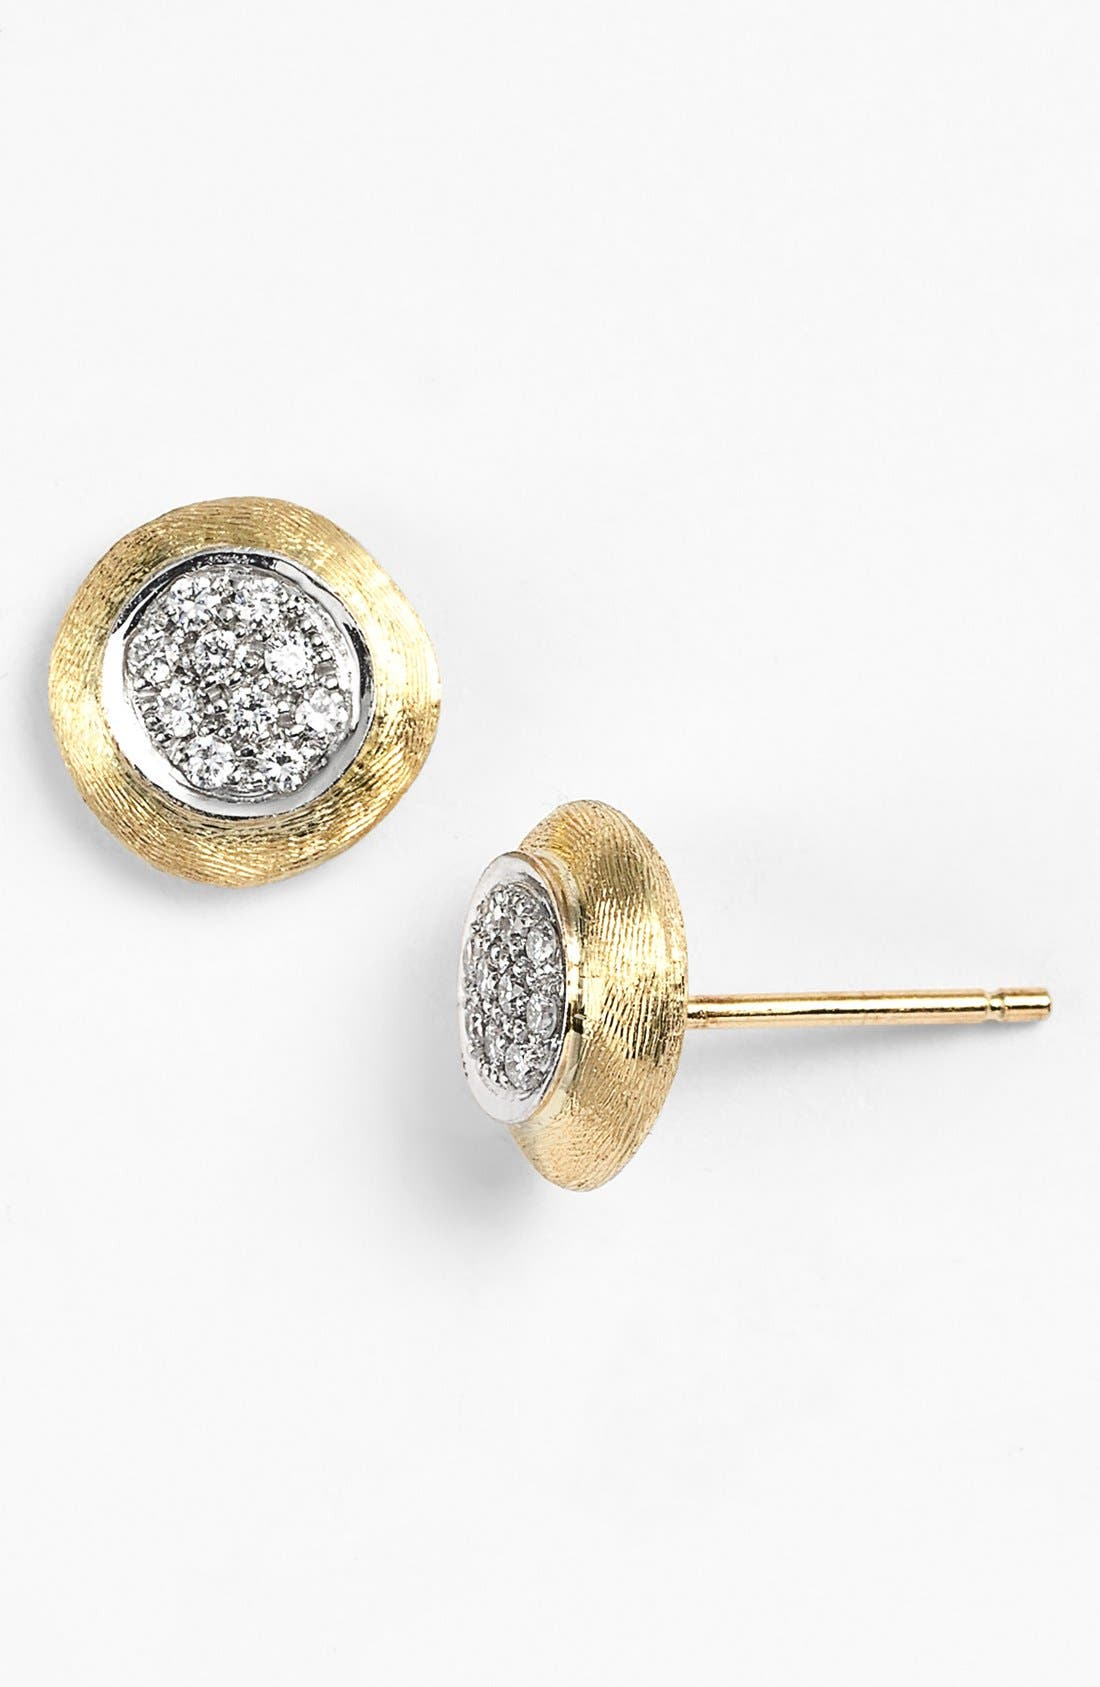 Marco Bicego 'Delicate' Diamond Stud Earrings